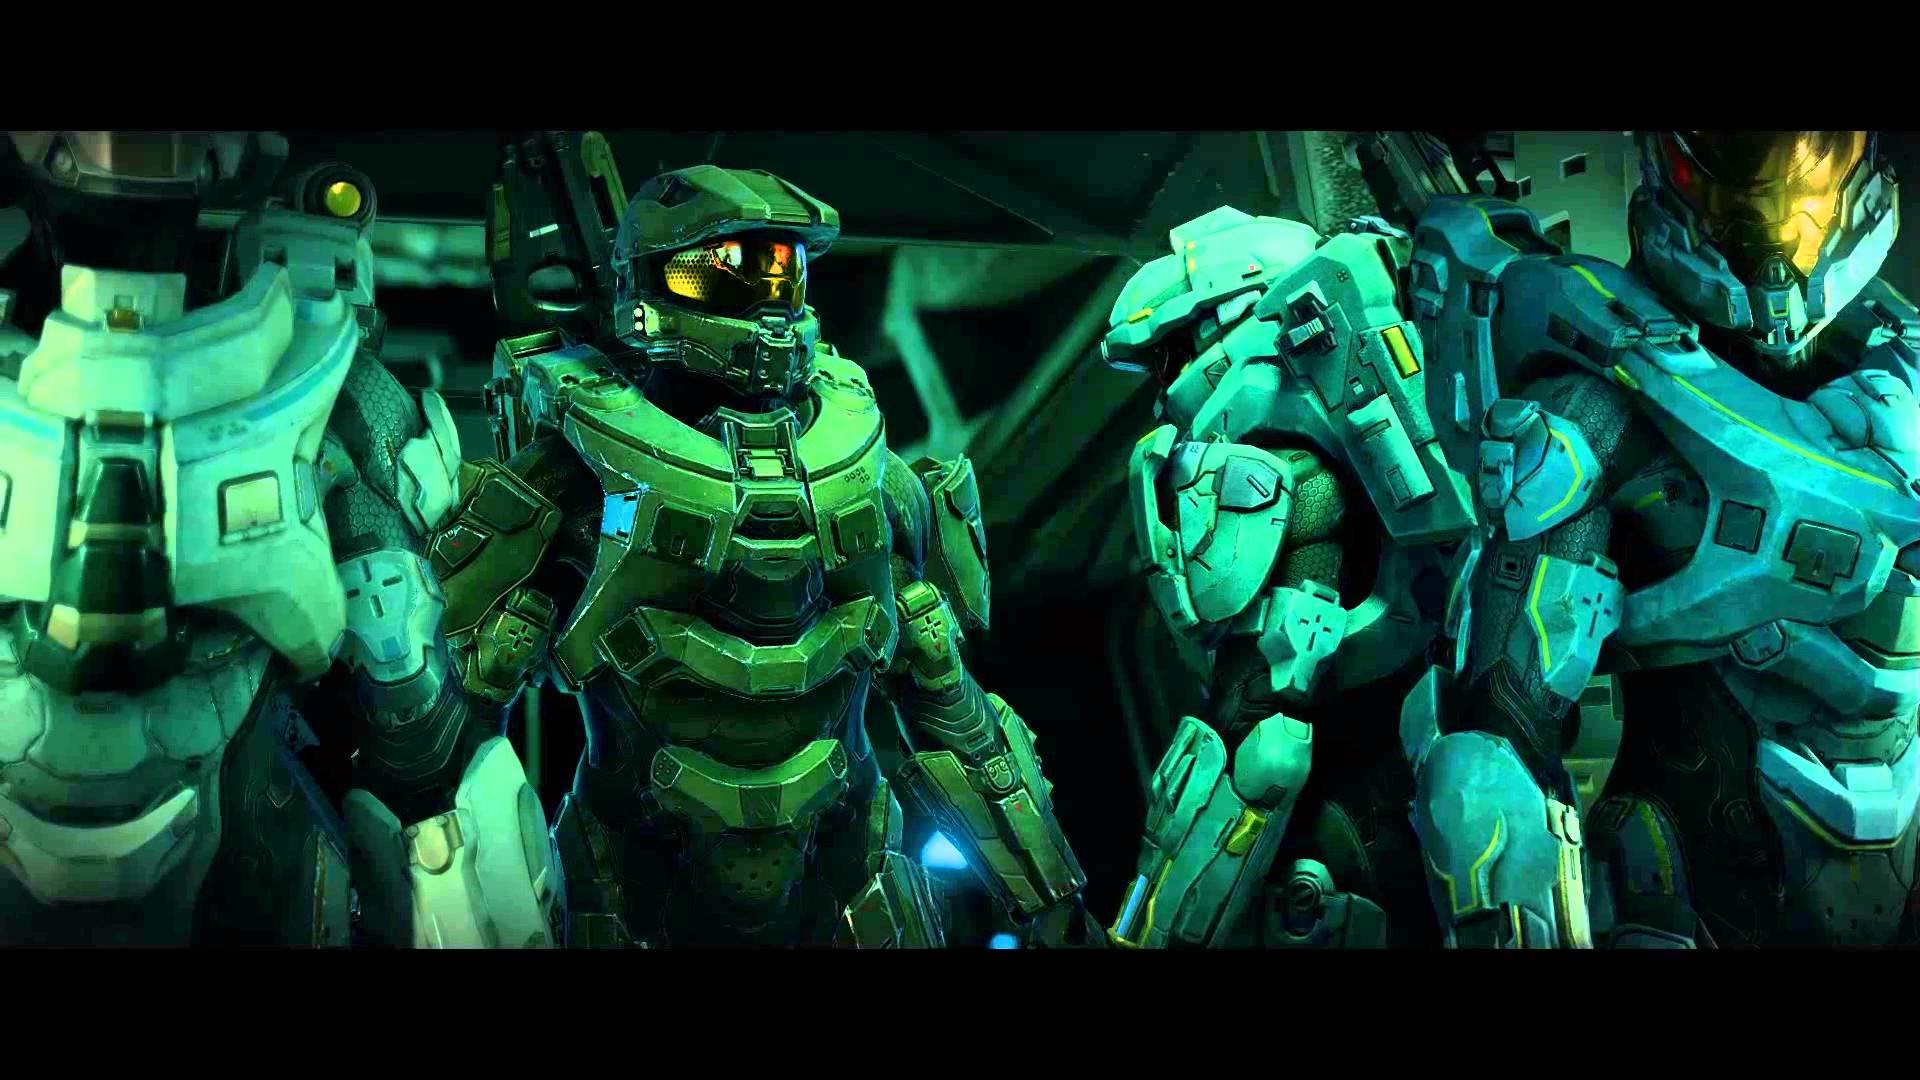 Halo 5: Guardians – Blue Team Opening Cinematic